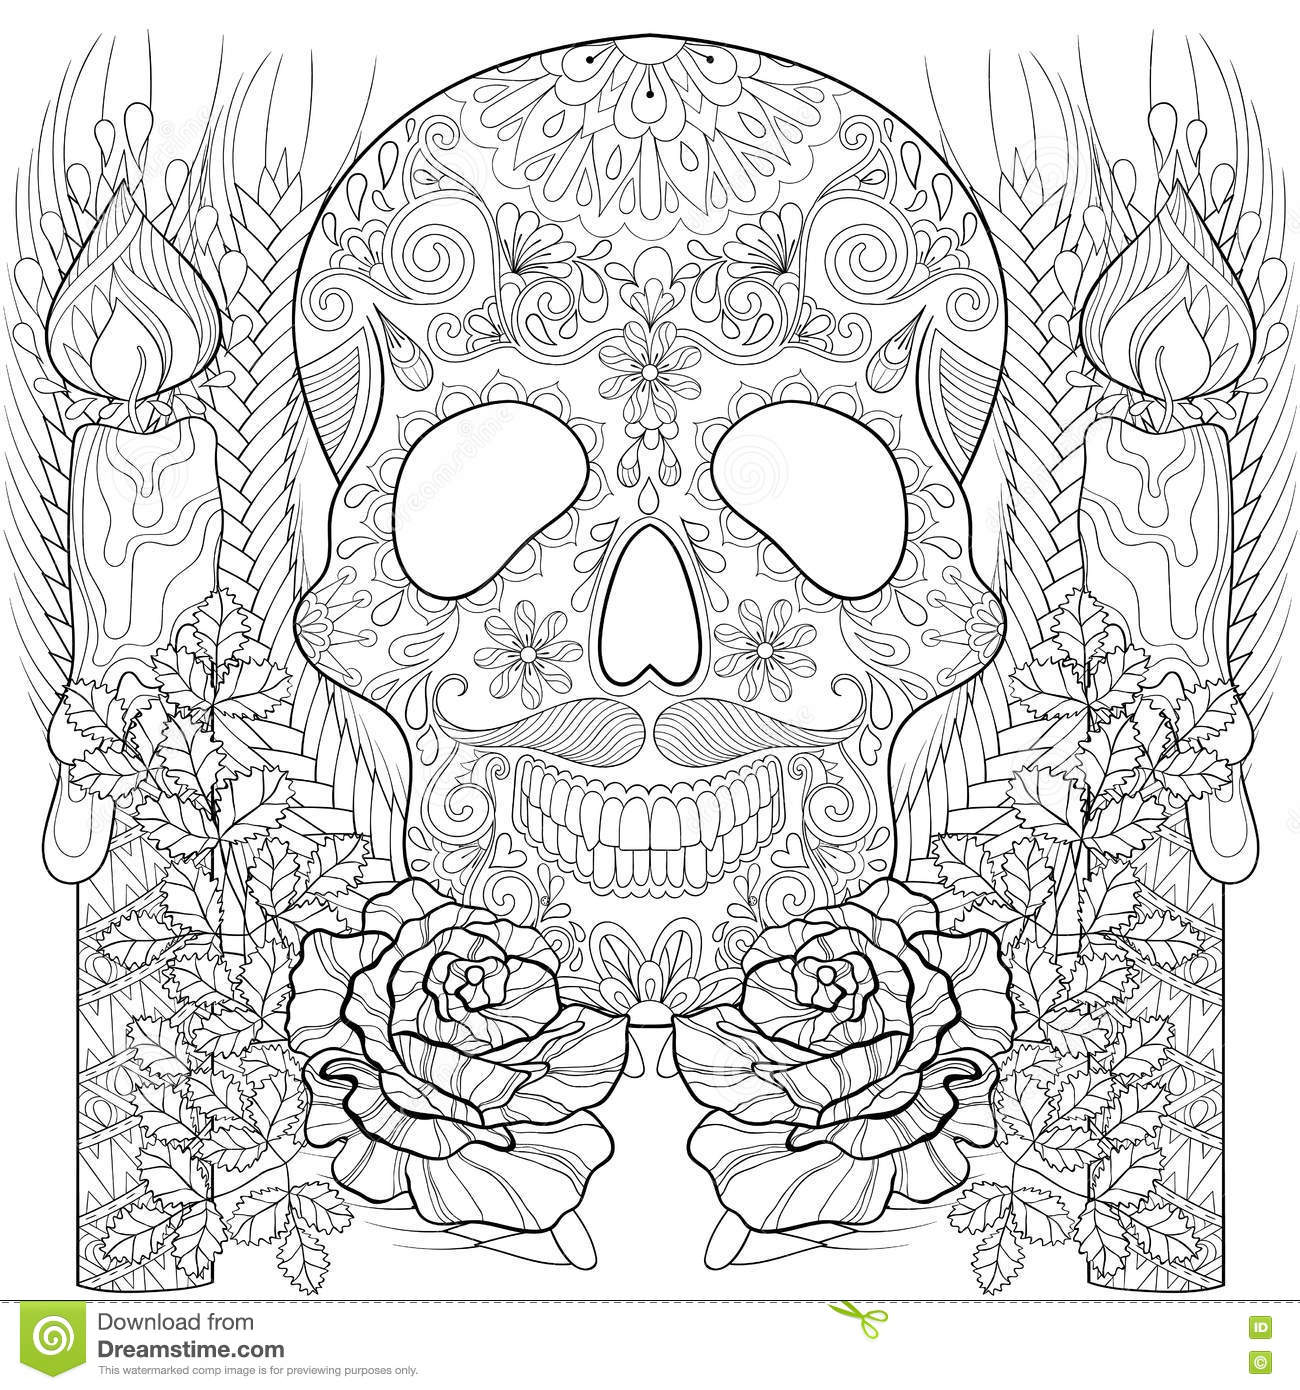 Zentangle Stylized Skull With Candles, Roses, Ears For Halloween ...